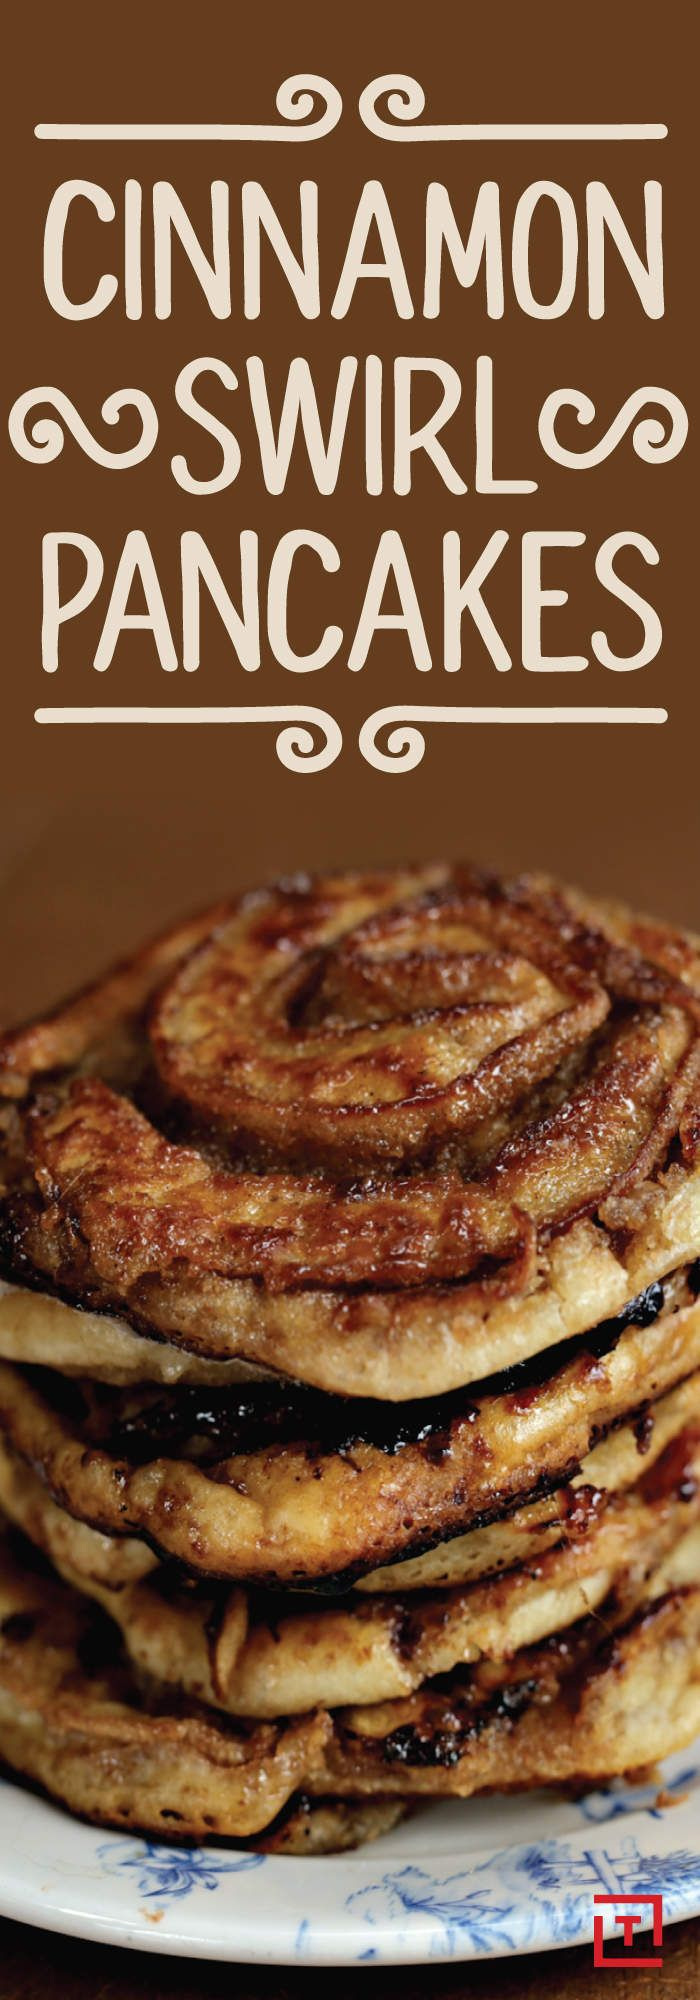 Cinnamon swirl pancakes...enough said